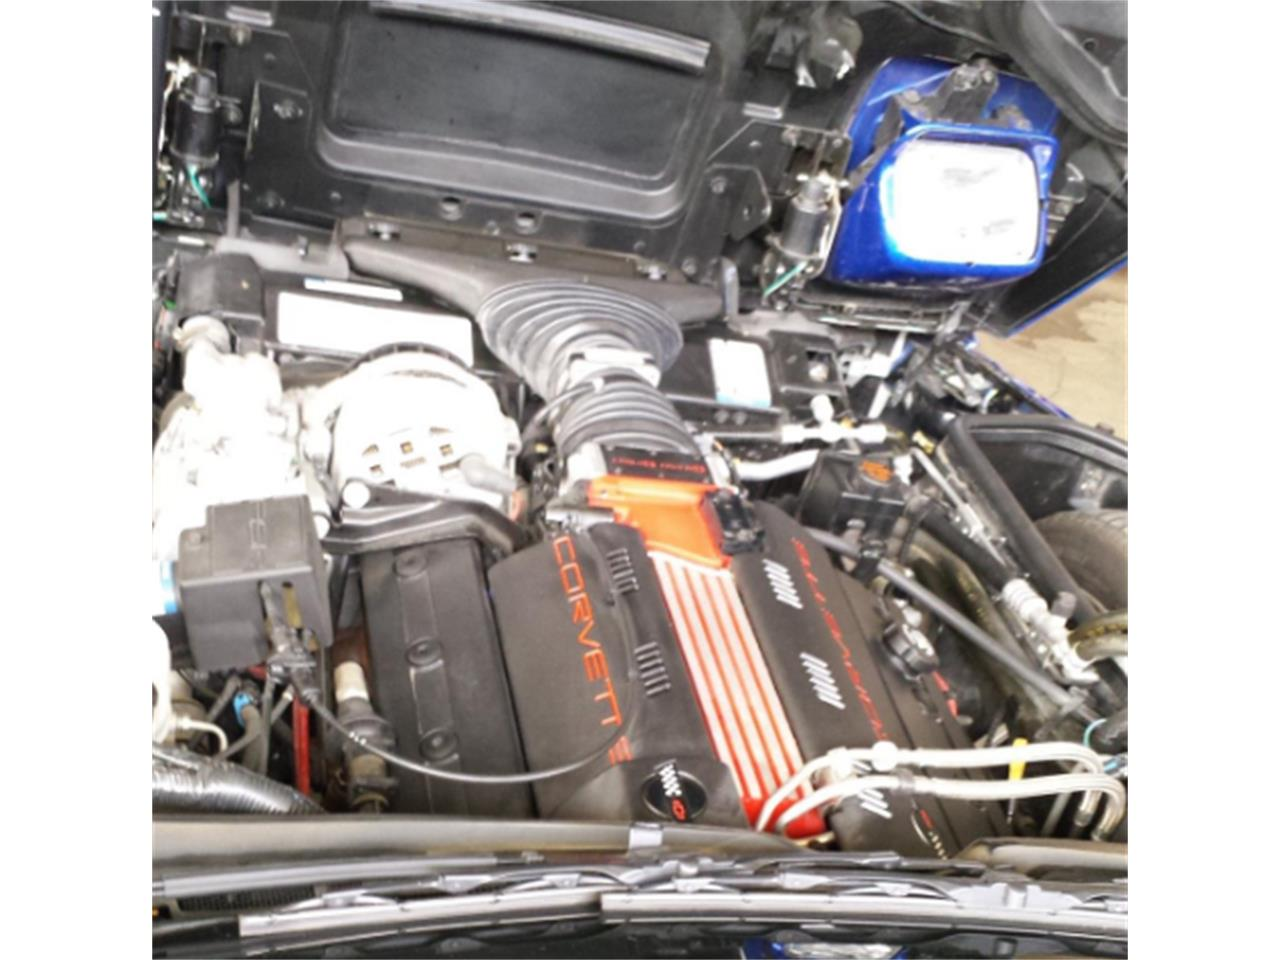 Large Picture of '96 Corvette located in Minnesota - $36,000.00 Offered by a Private Seller - MXIW